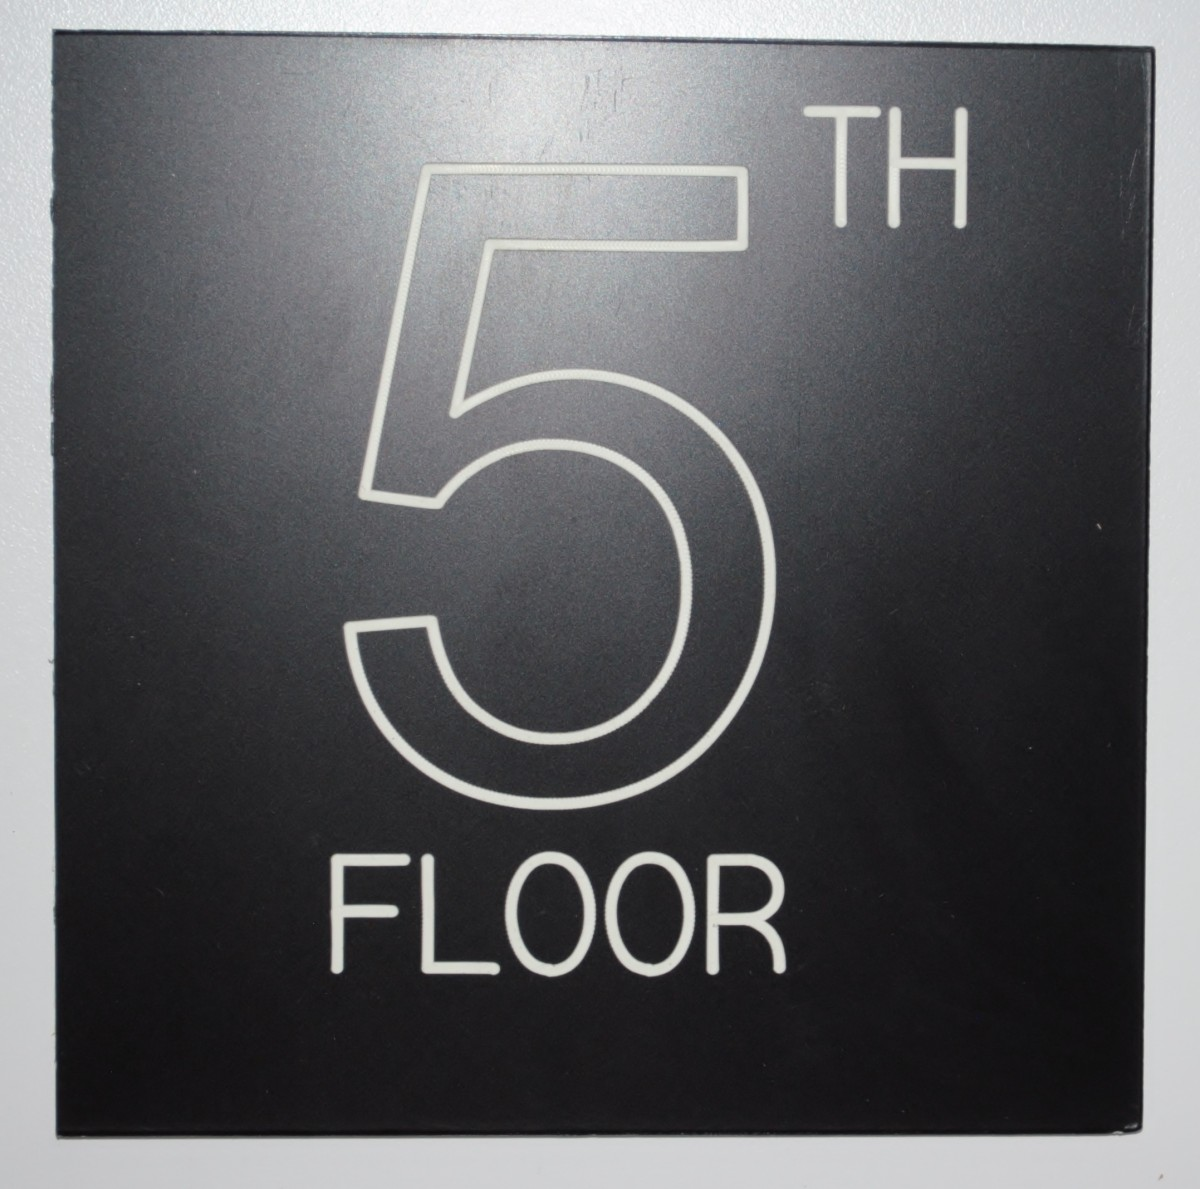 Building Floor Amp Stair Sign Signs Janitorial Online